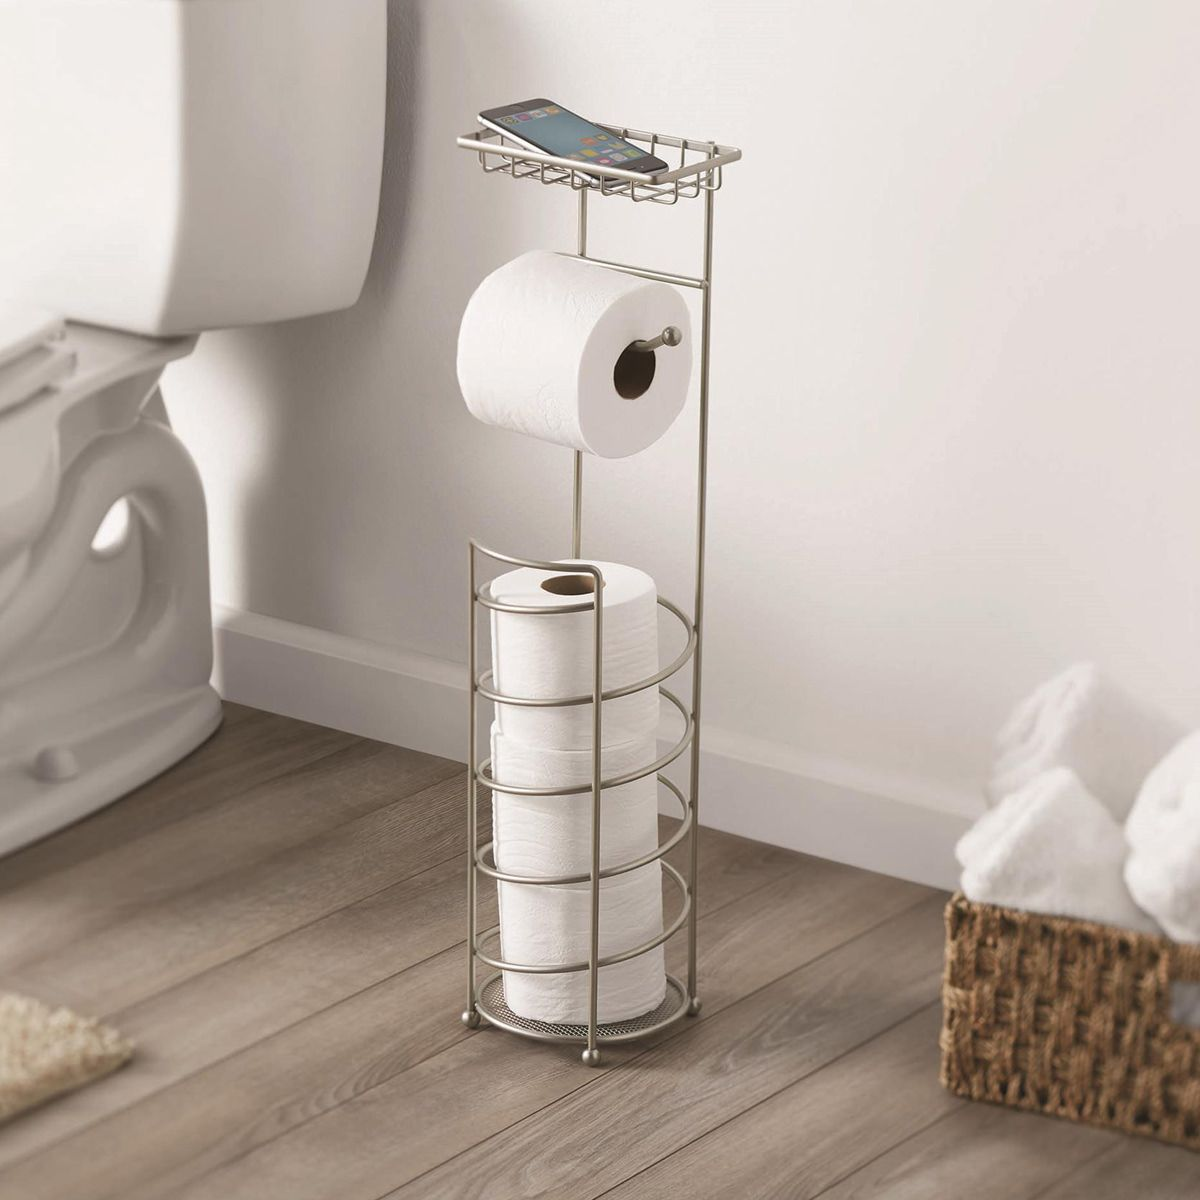 Home Improvement Toilet Paper Toilet Paper Stand Bronze Toilet Paper Holder